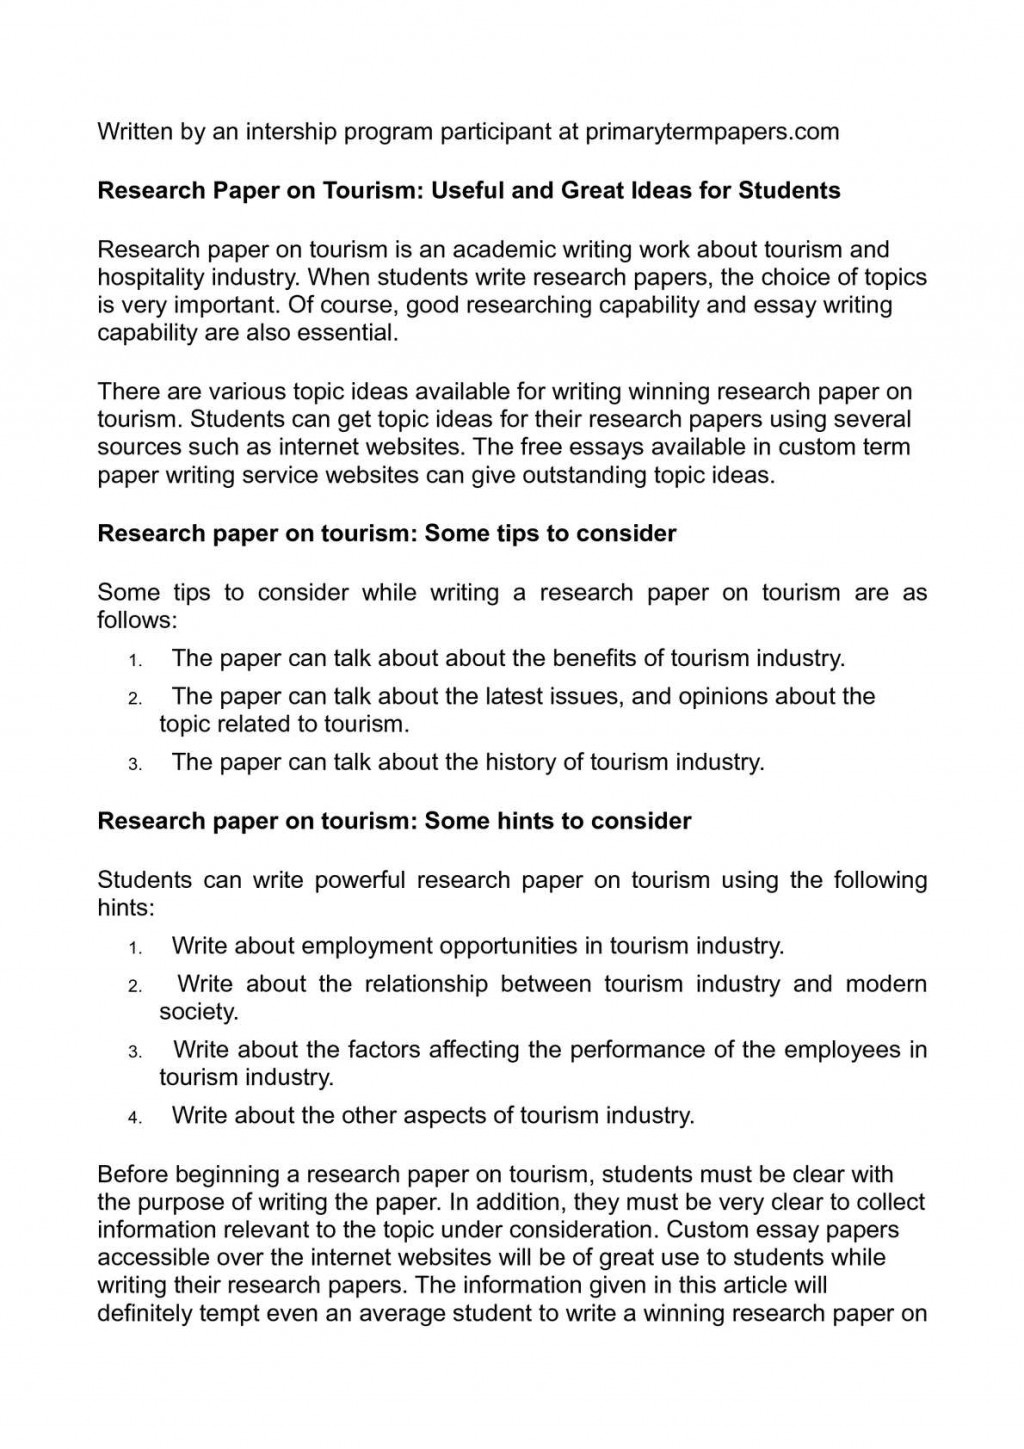 009 Research Paper Ideas For Fascinating Papers In Computer Science Middle School Large